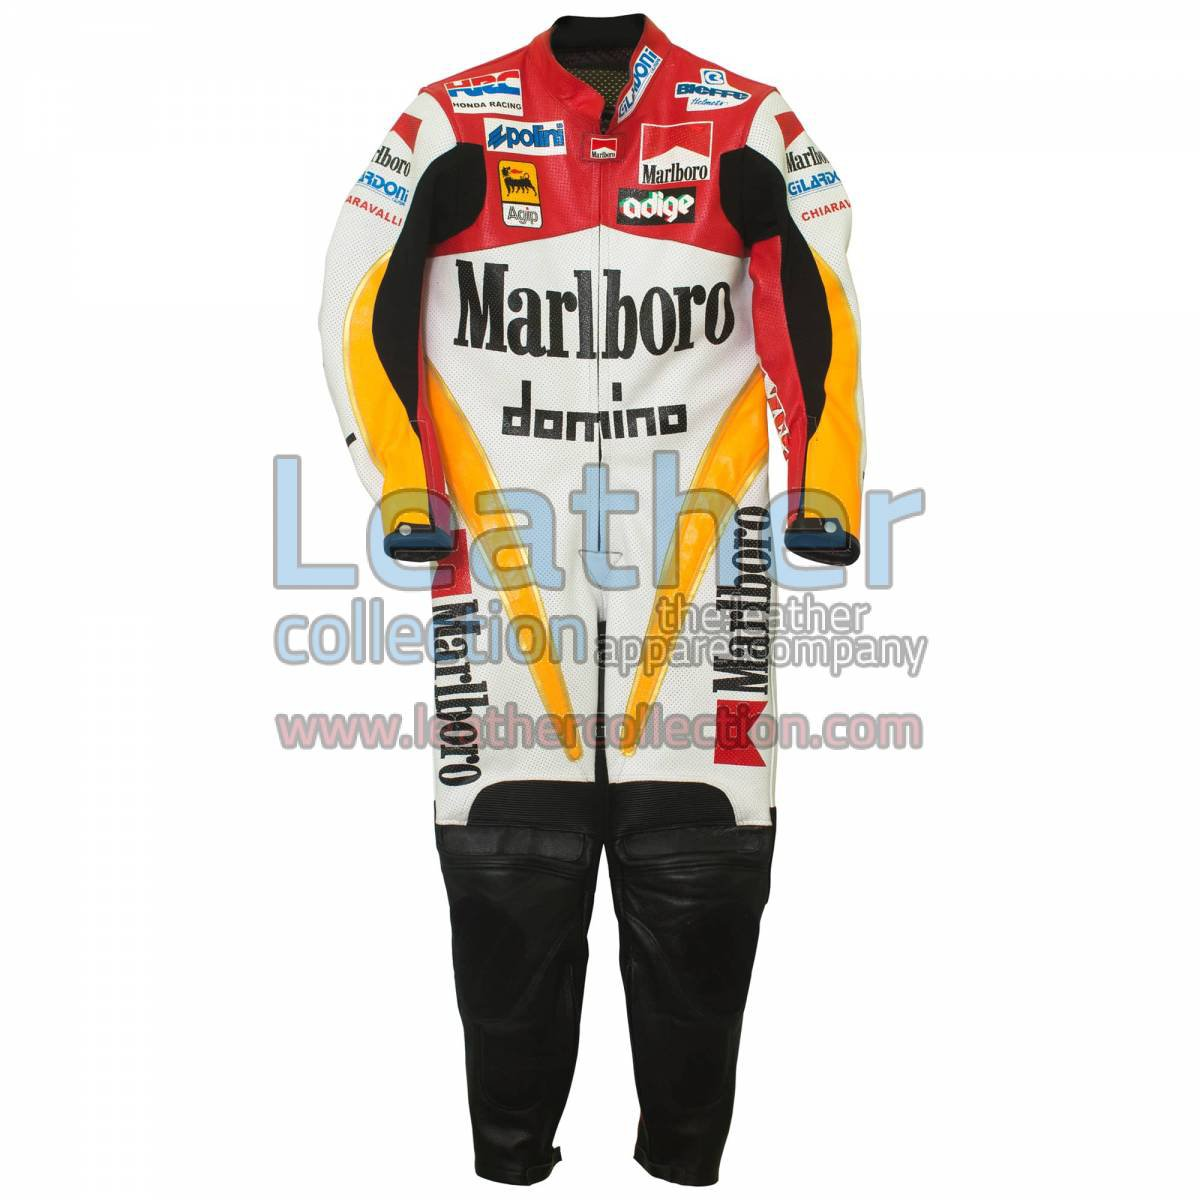 Loris Capirossi Honda GP 1995 Racing Suit